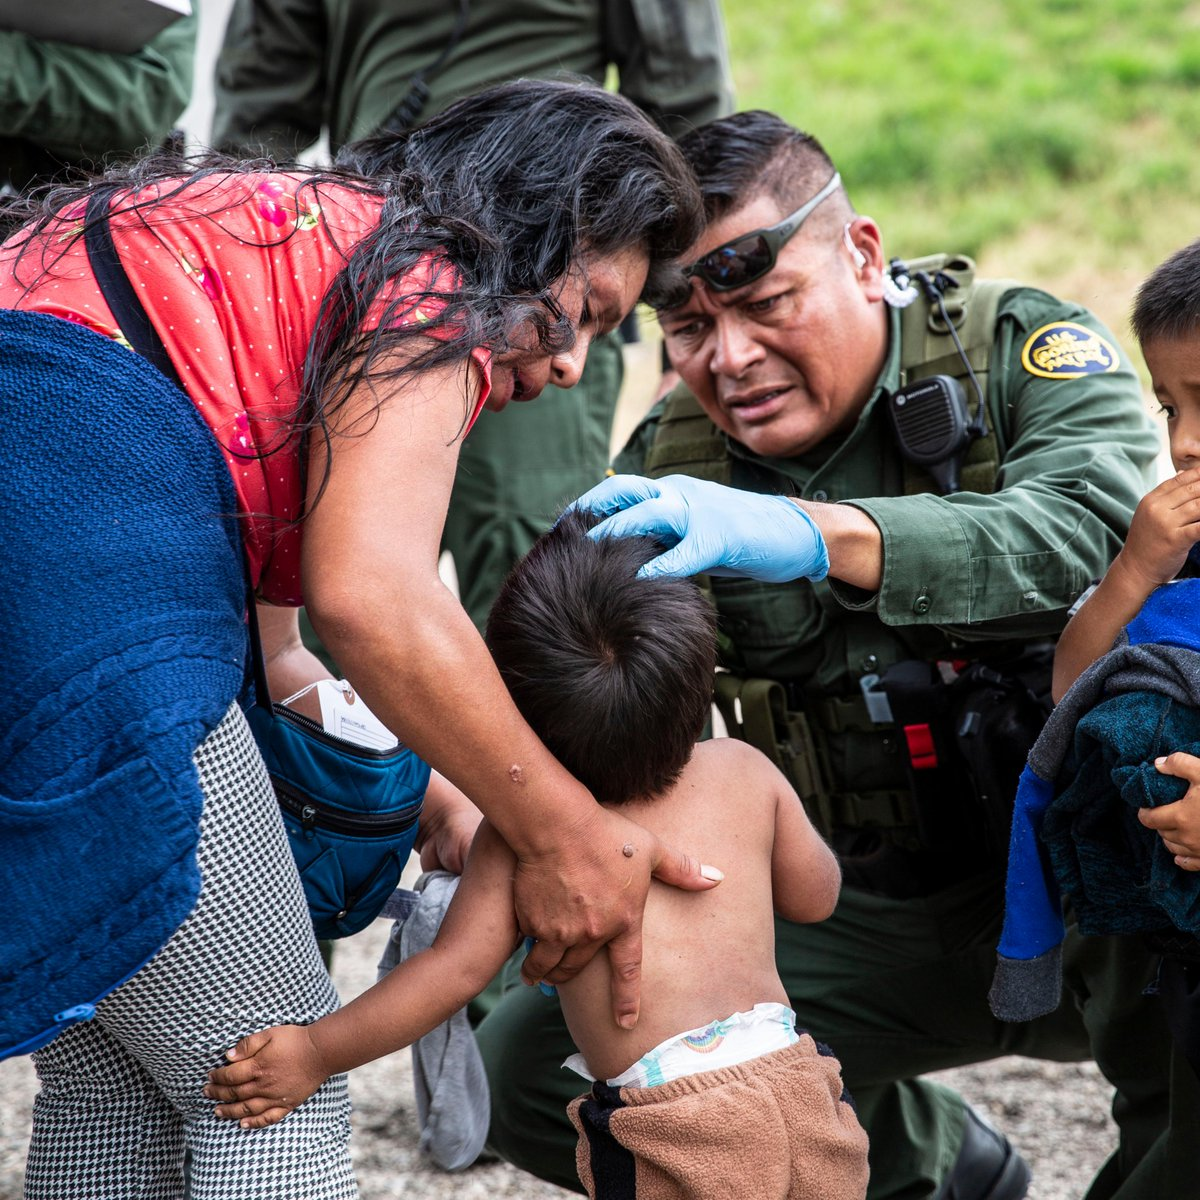 A Border Patrol EMT treated a small child on the border this week suffering from insect bites that covered his body. Over 1,300 Border Patrol agents are trained EMTs—using their skills to save lives and treat injuries of people they encounter.